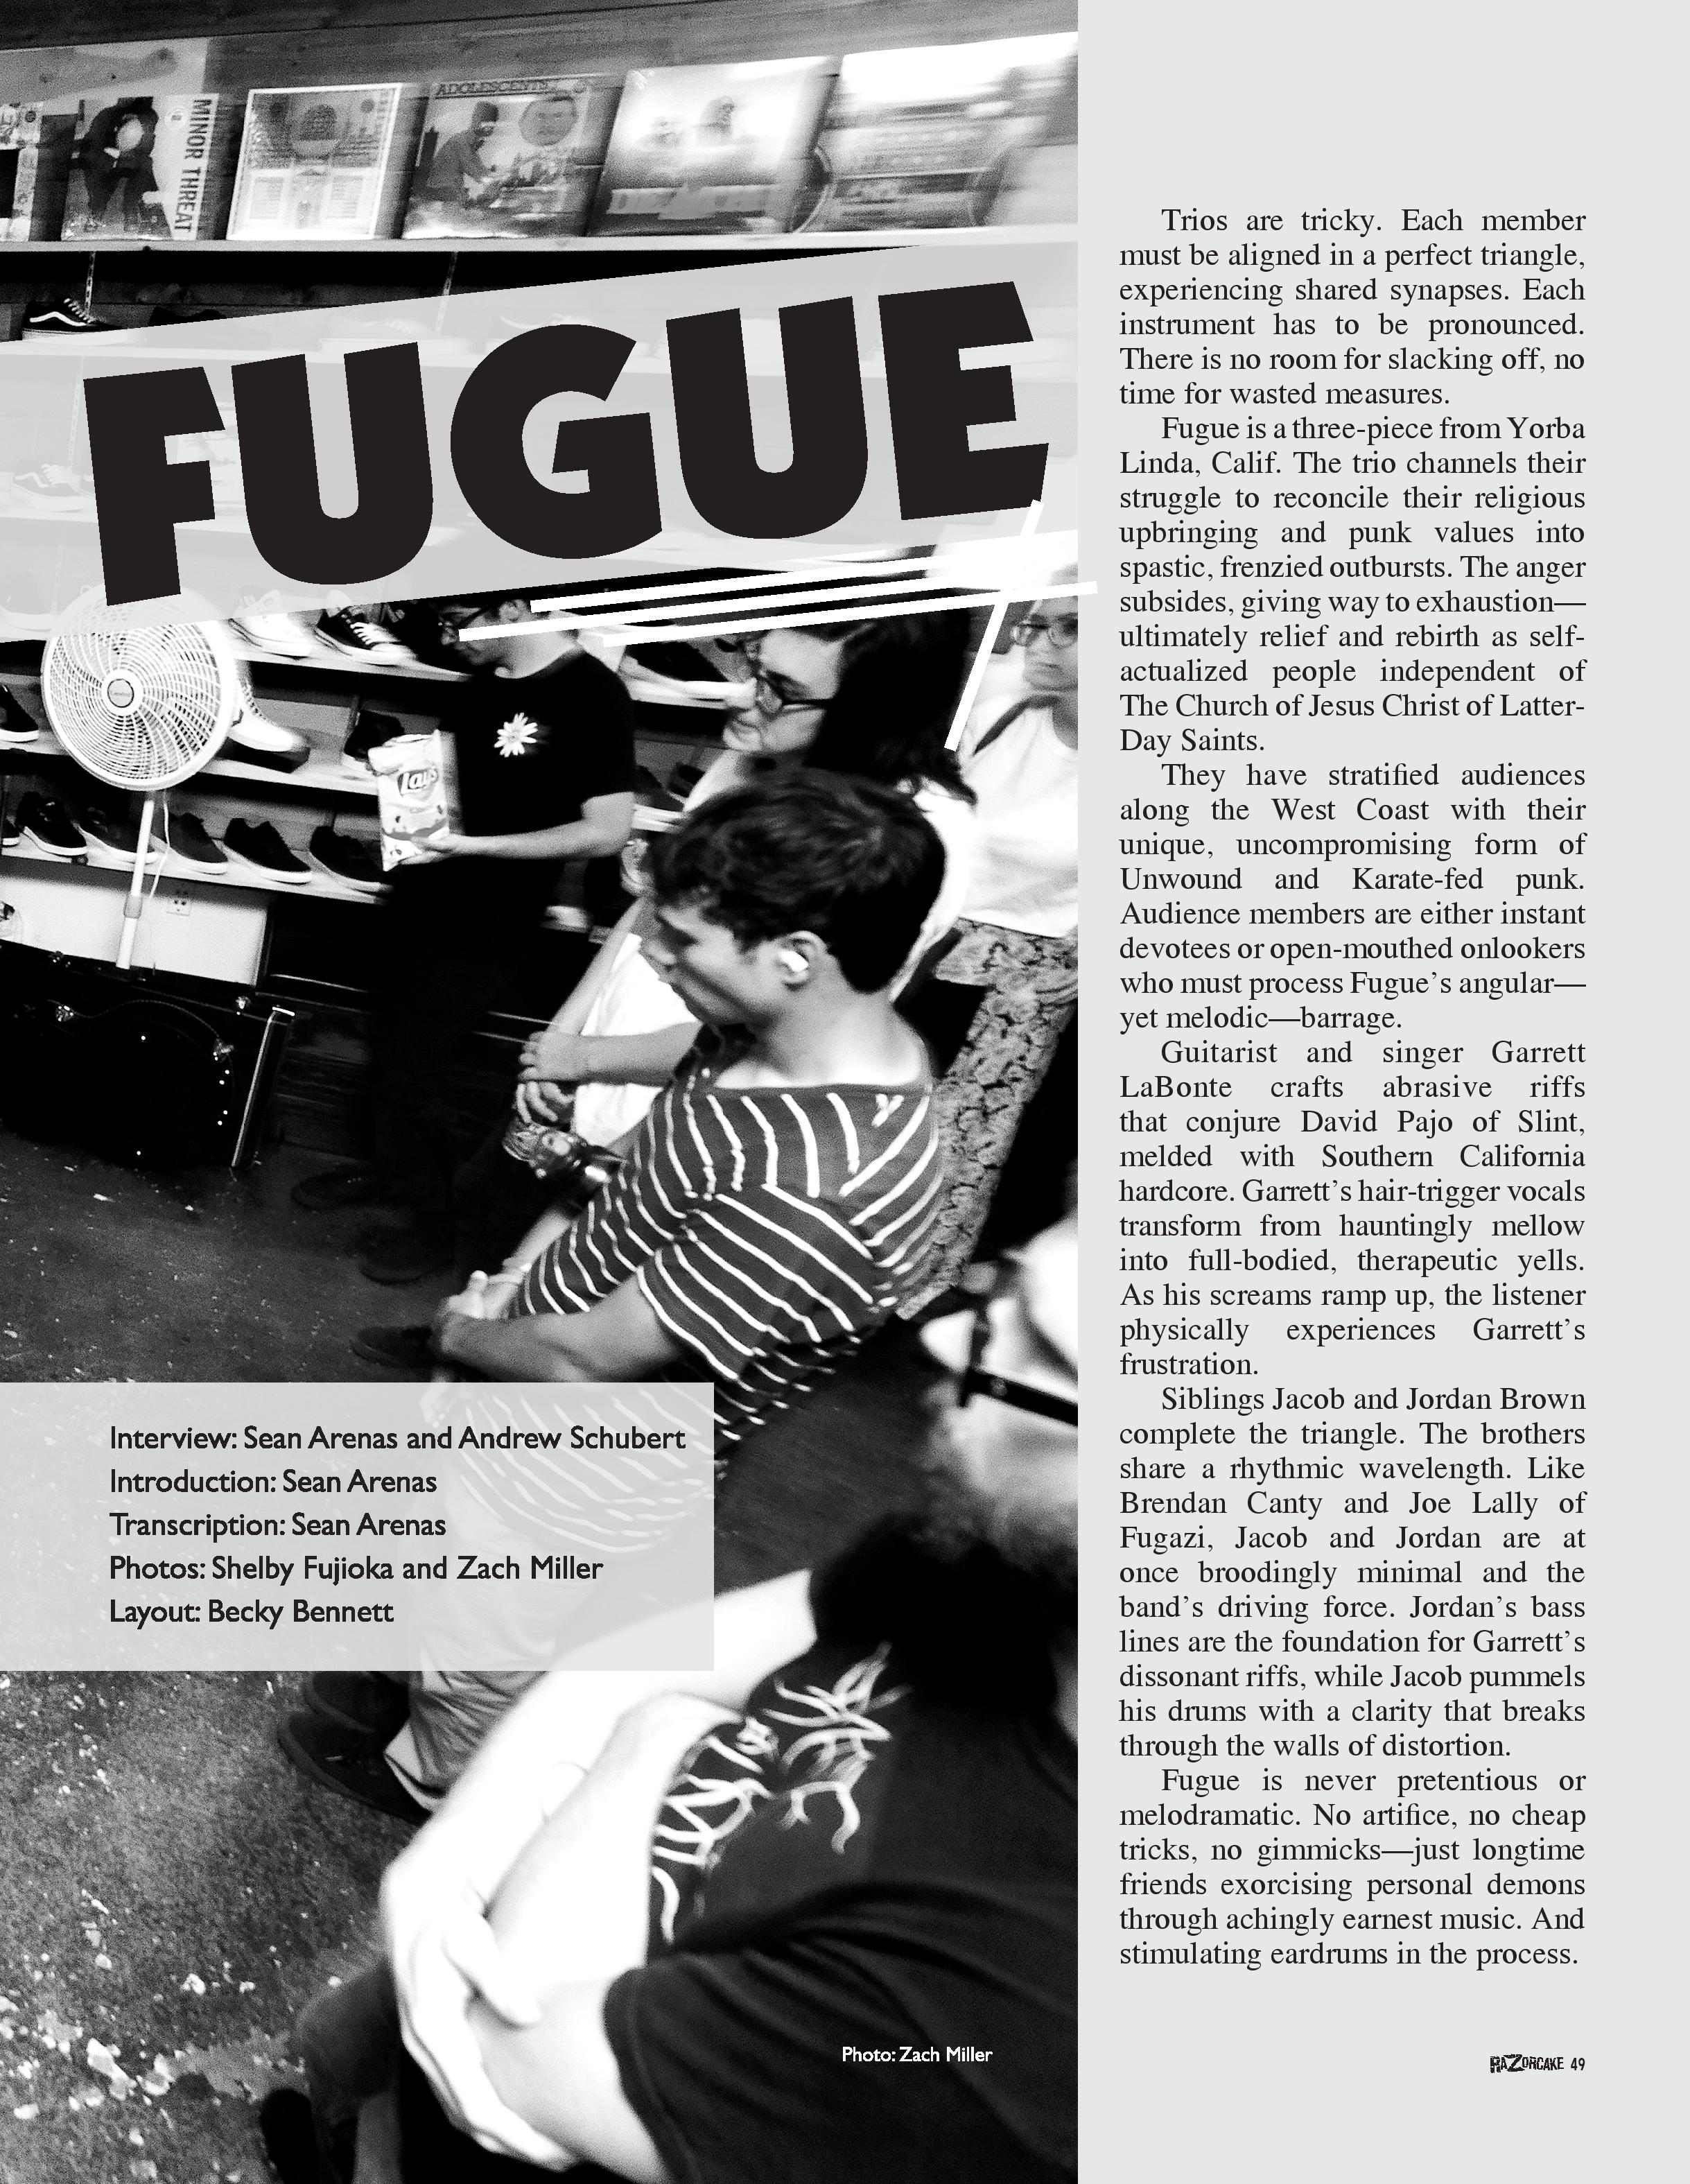 fugue_interview-page-002.jpg